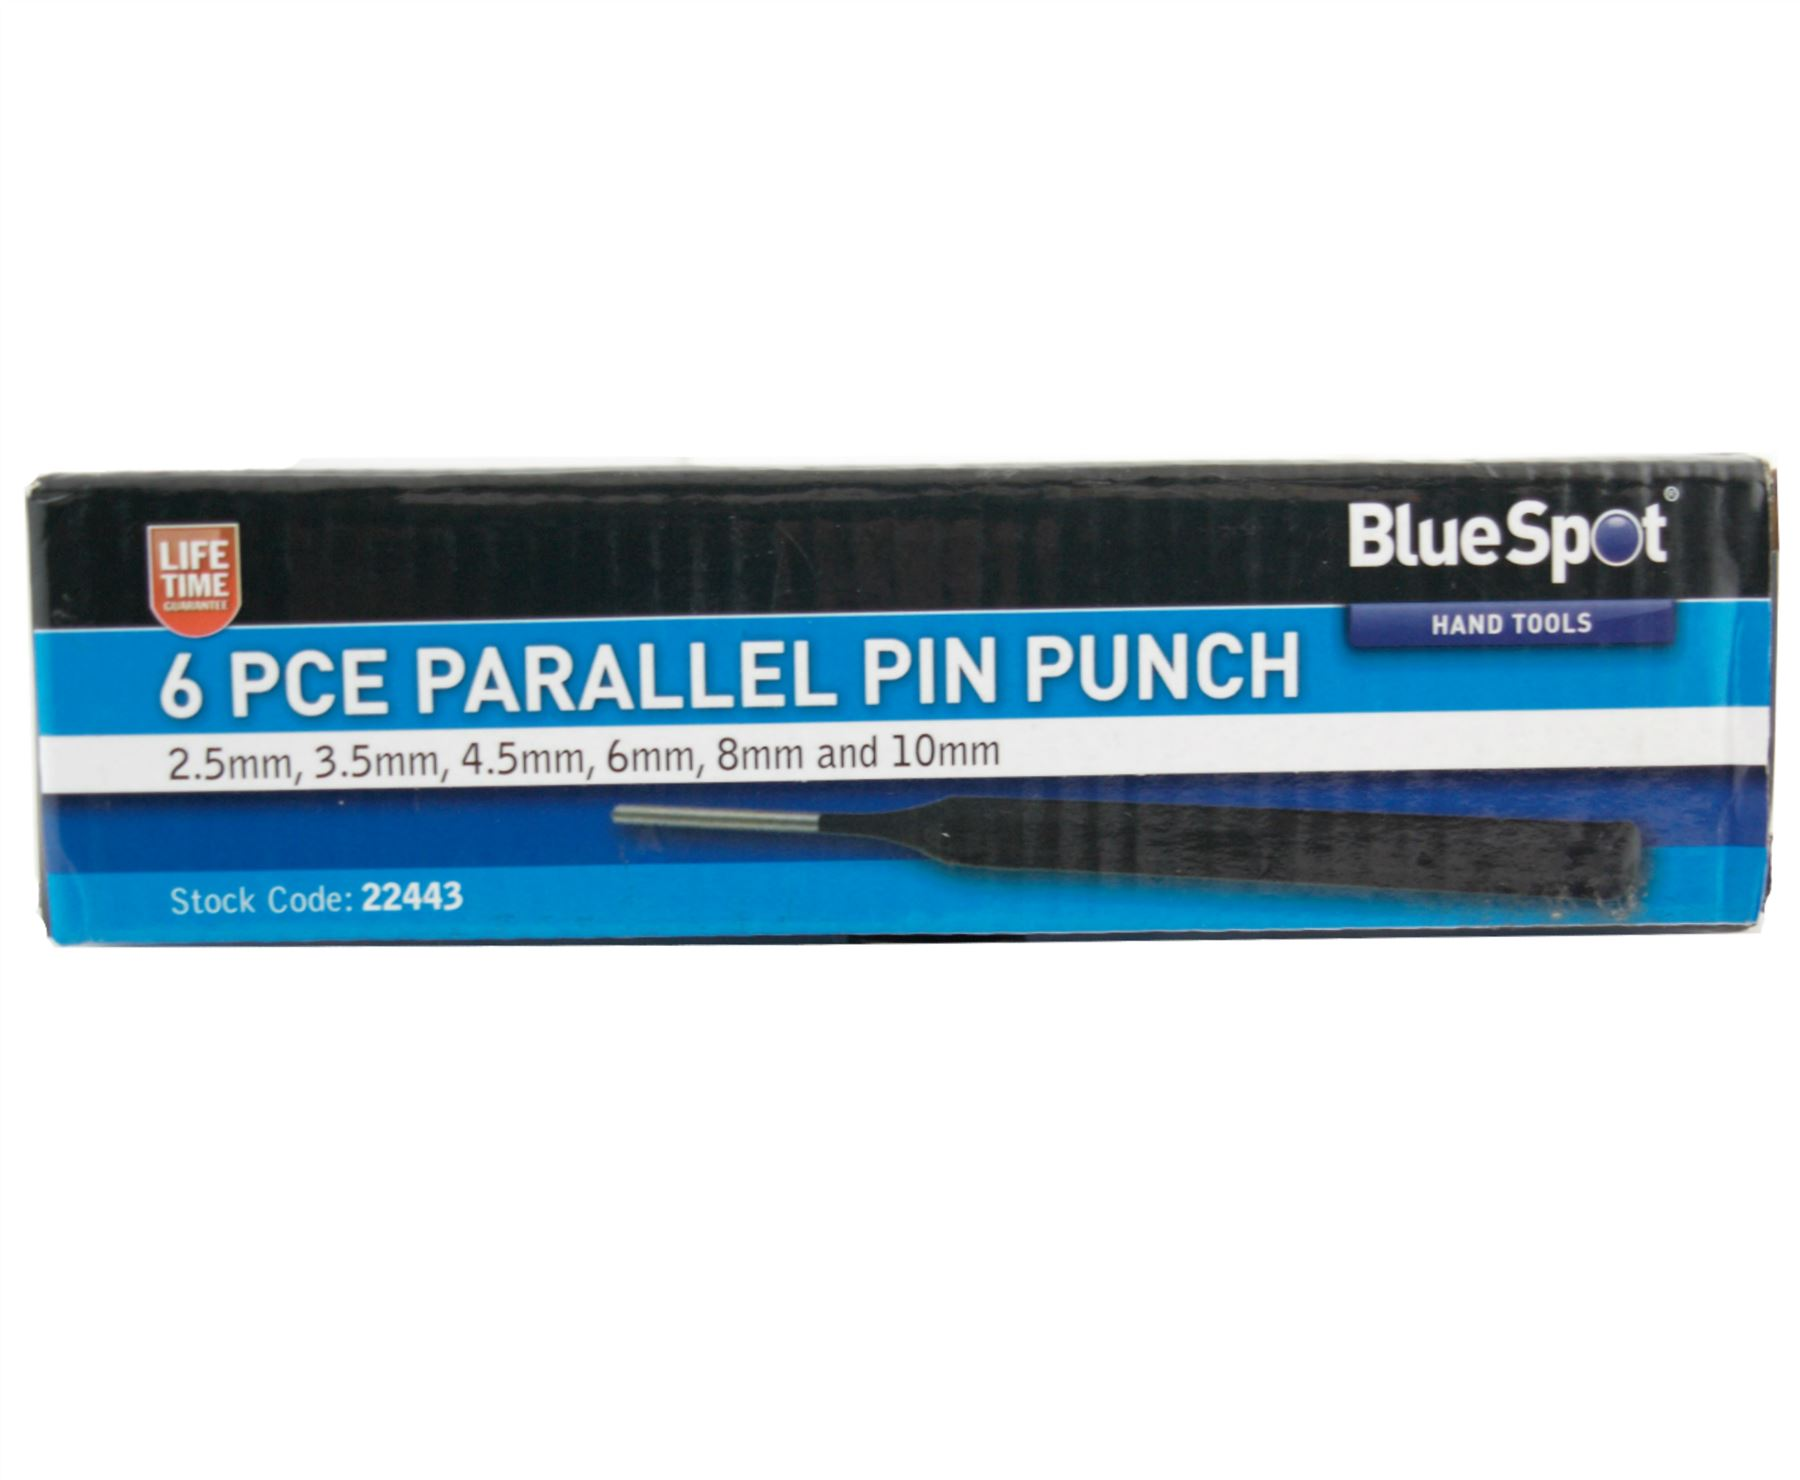 Blue Spot 6 Piece Parellel Pin Punch Set 2.5mm 10mm Lifetime Warranty 6pc